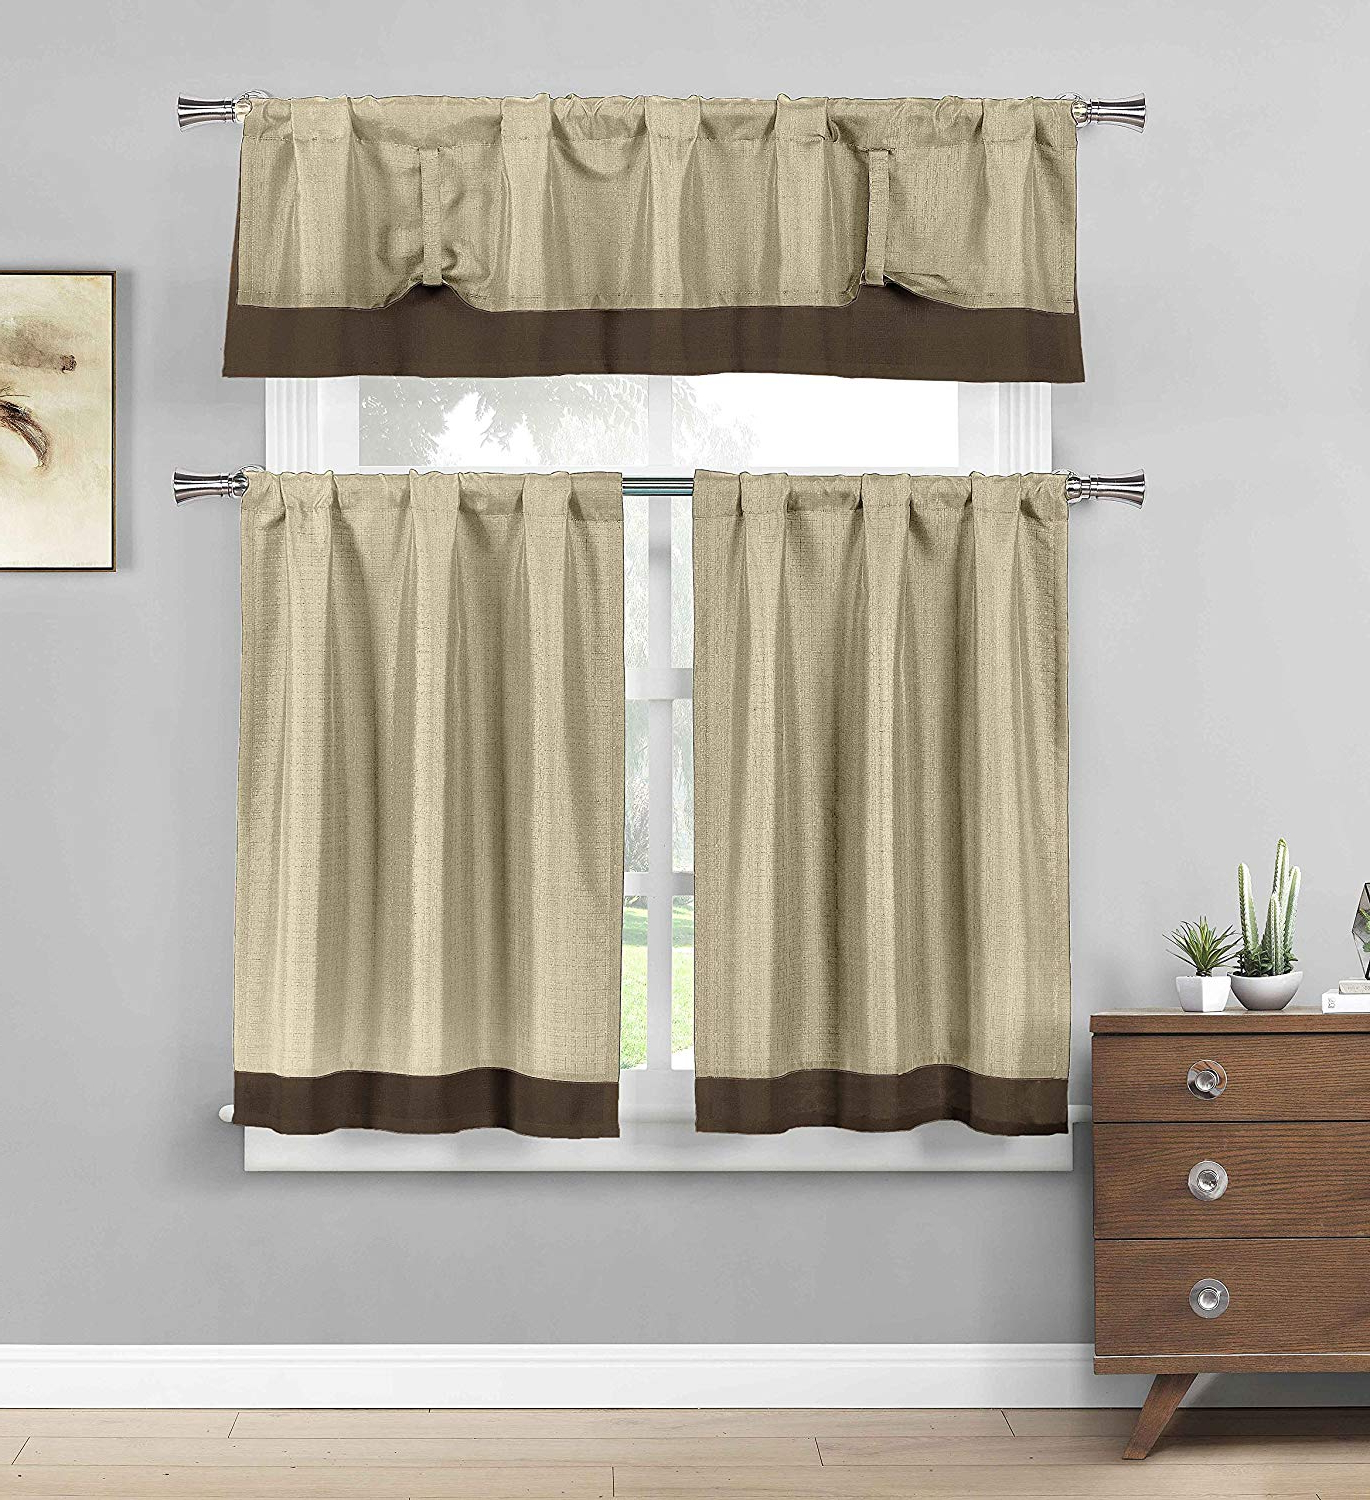 Bathroom And More Three Piece Kitchen/cafe Tier Window Curtain Set:  Chocolate Brown Border Accent (Linen) Throughout Most Up To Date Chocolate 5 Piece Curtain Tier And Swag Sets (View 5 of 20)